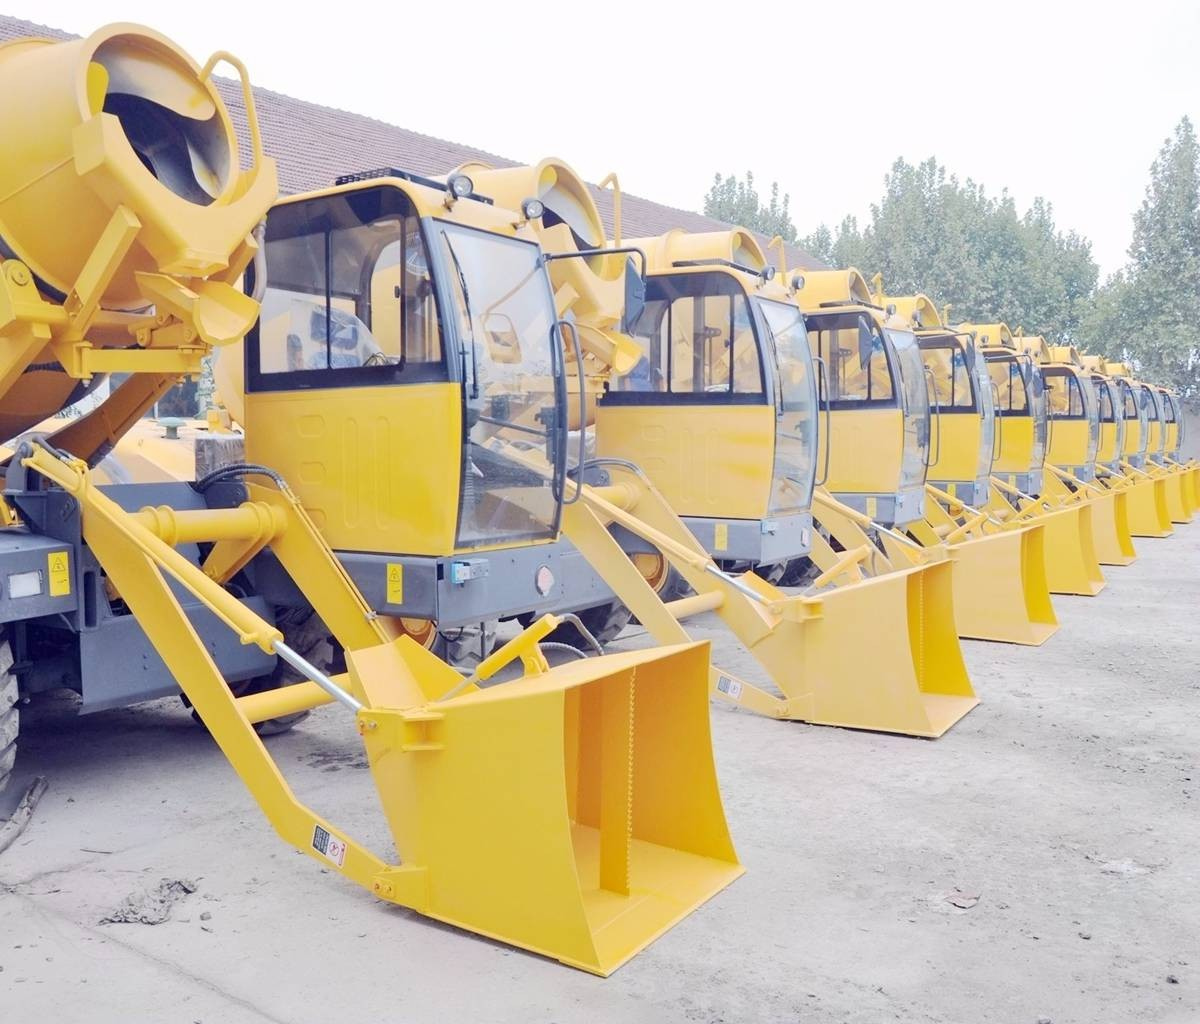 Sales Mobile Concrete Mixer Truck For Sale, Buy Mobile Concrete Mixer Truck For Sale, Mobile Concrete Mixer Truck For Sale Factory, Mobile Concrete Mixer Truck For Sale Brands